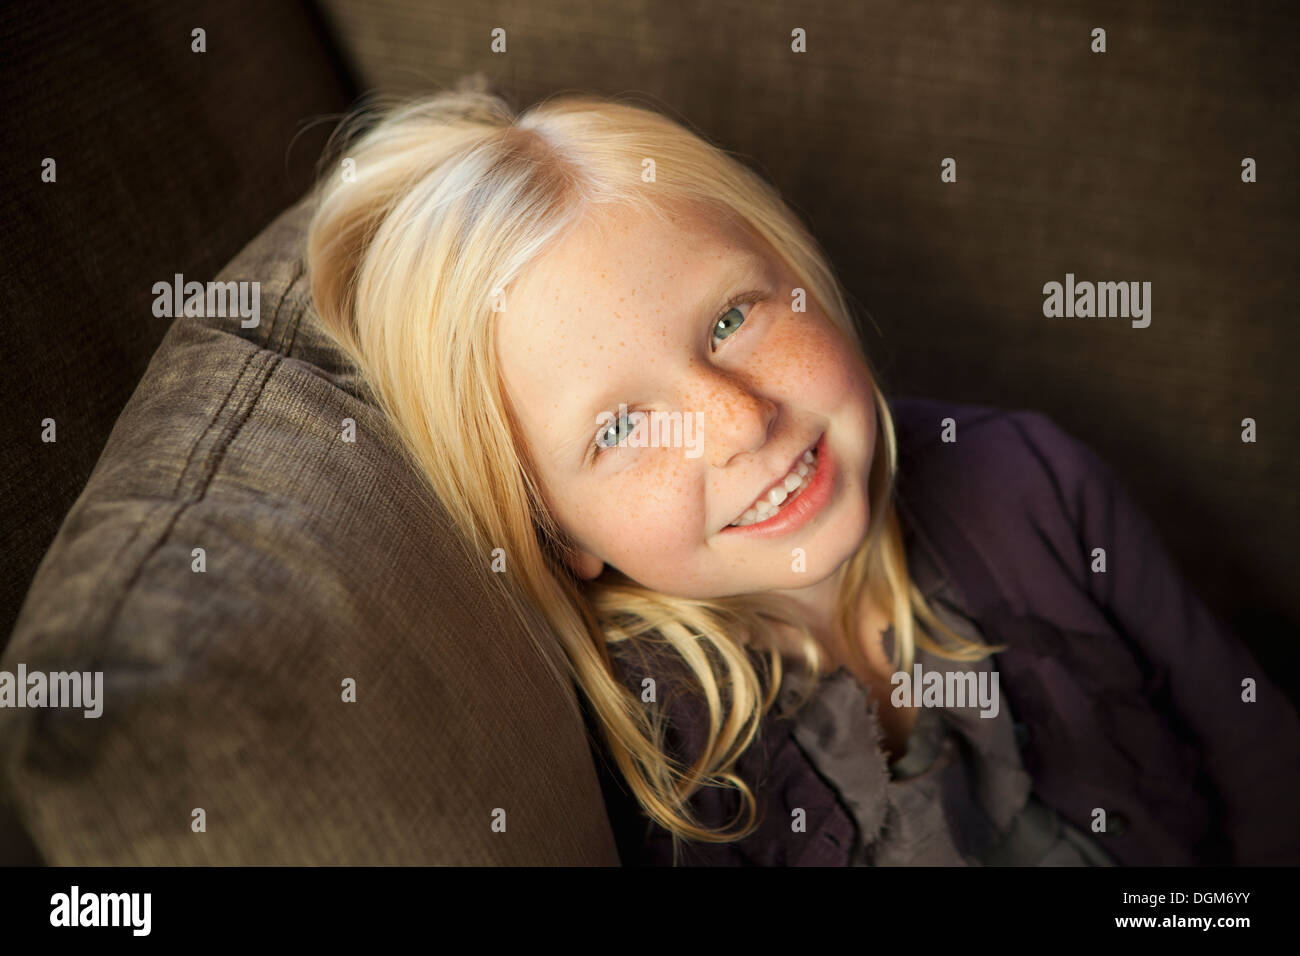 A girl sitting on a couch, smiling at the camera. Stock Photo